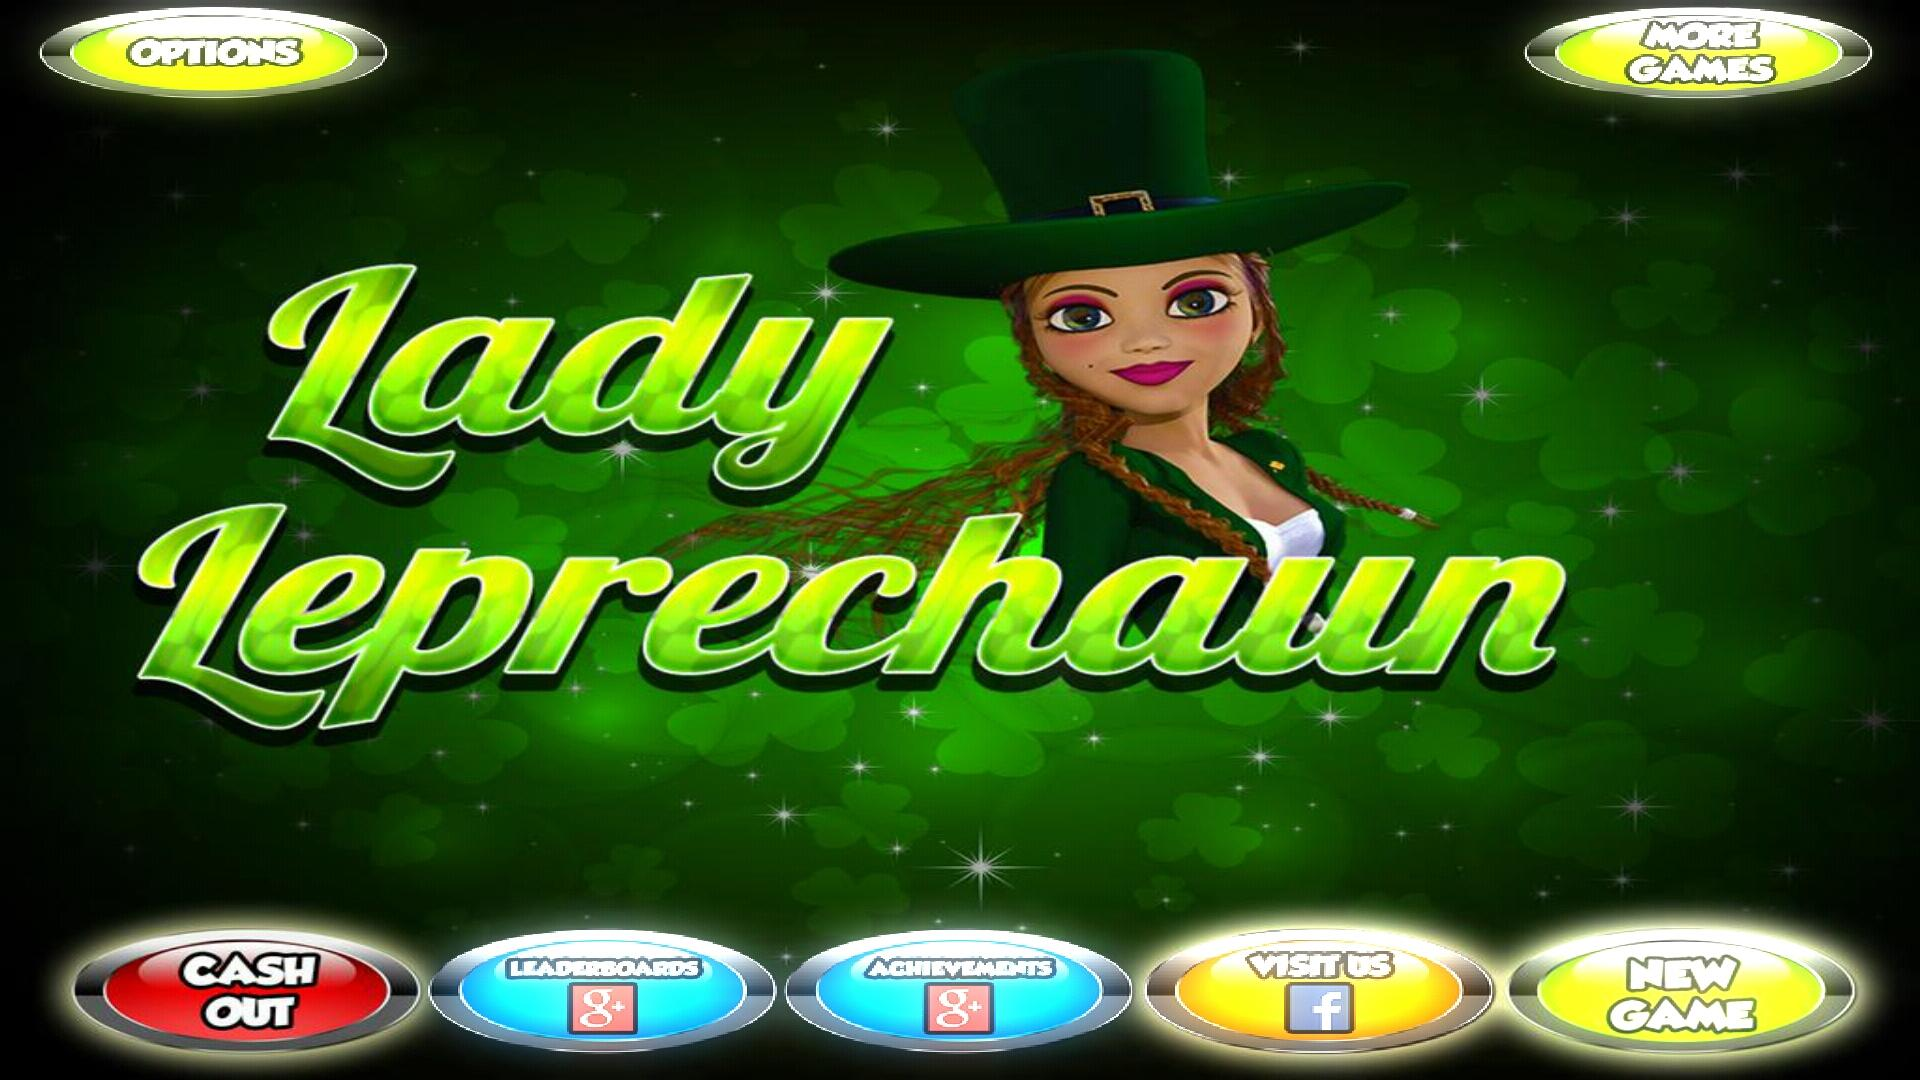 The Lady Leprechaun Slots